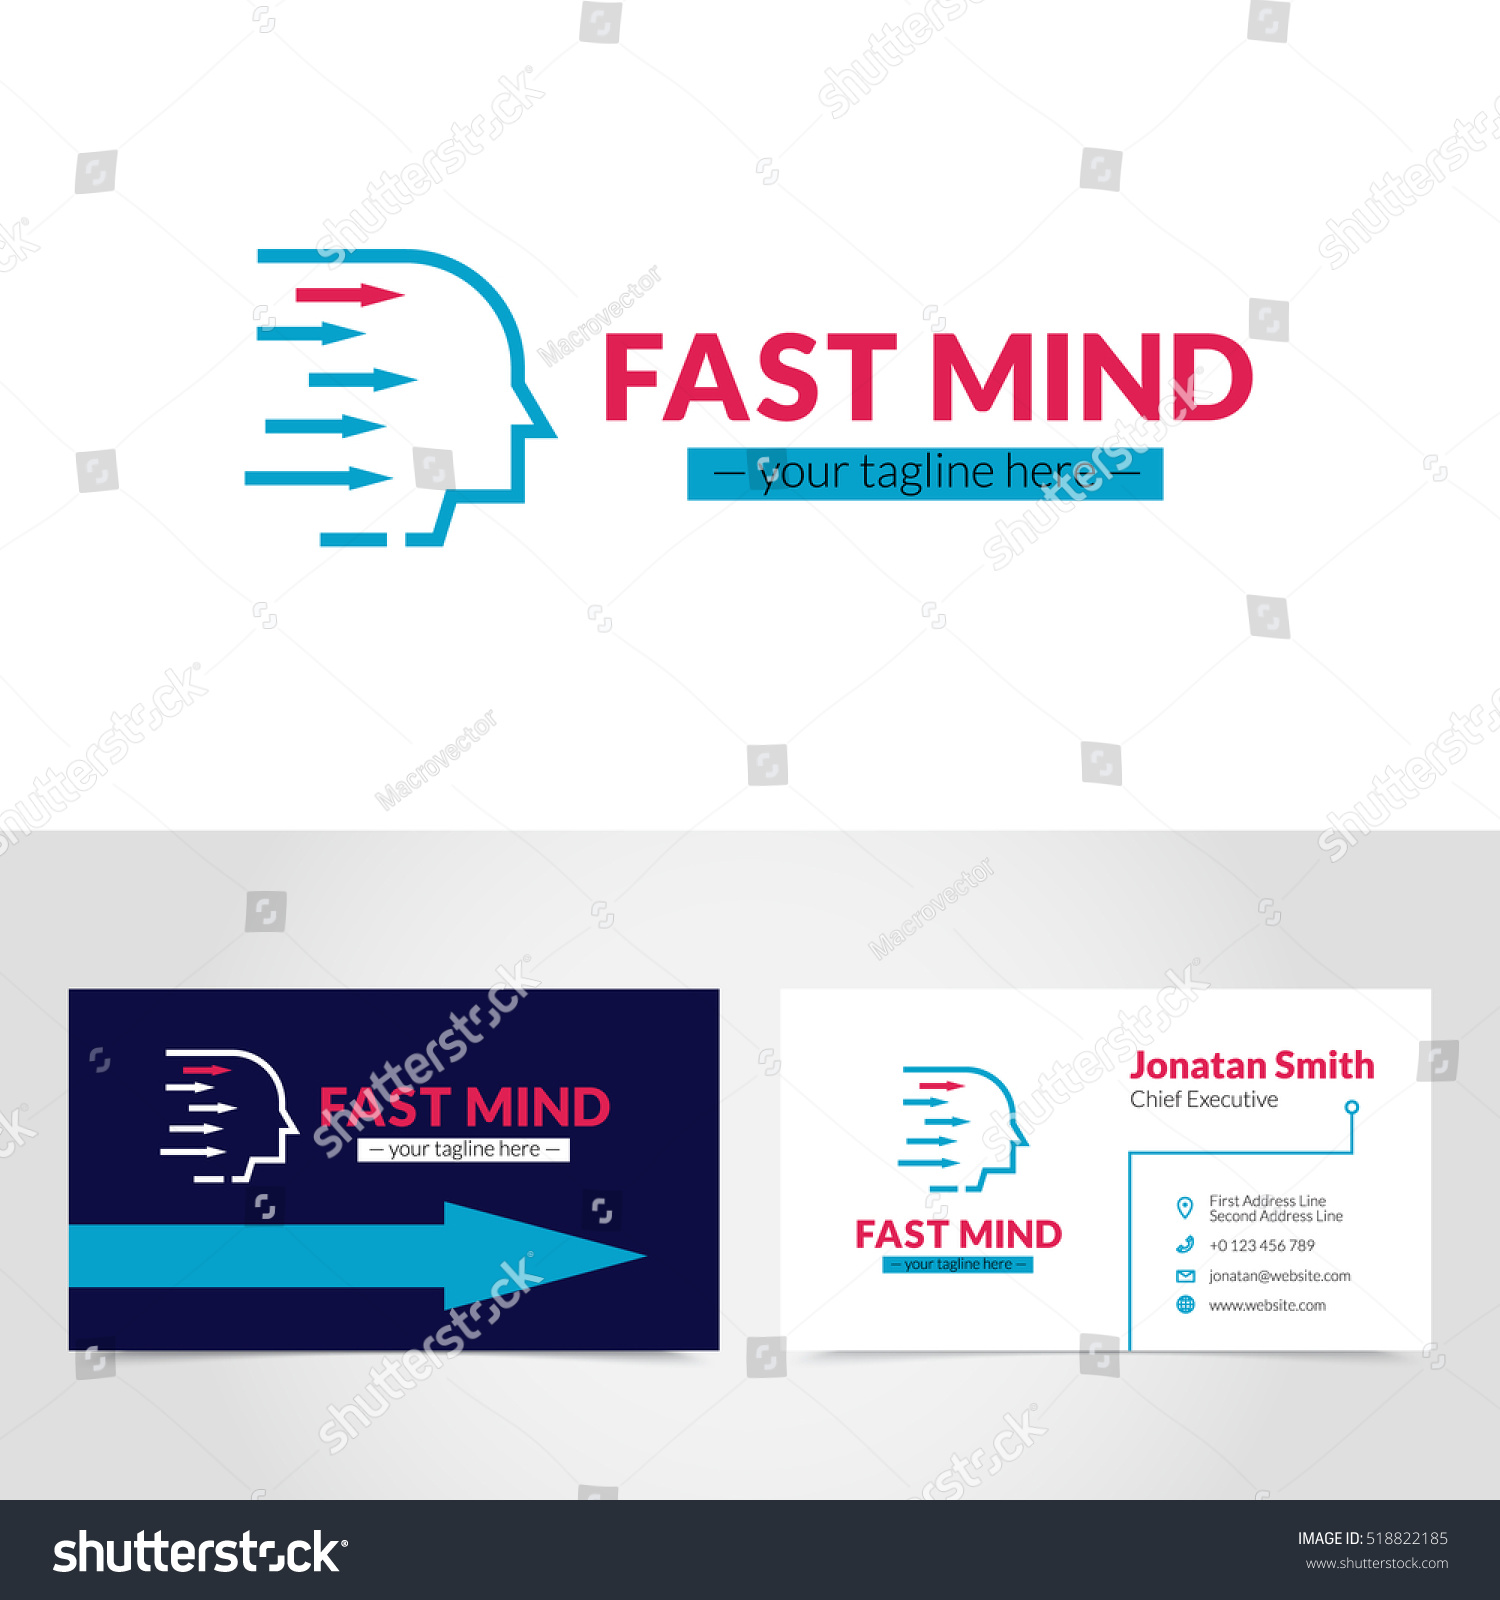 Creating Business Cards Online Images - Free Business Cards